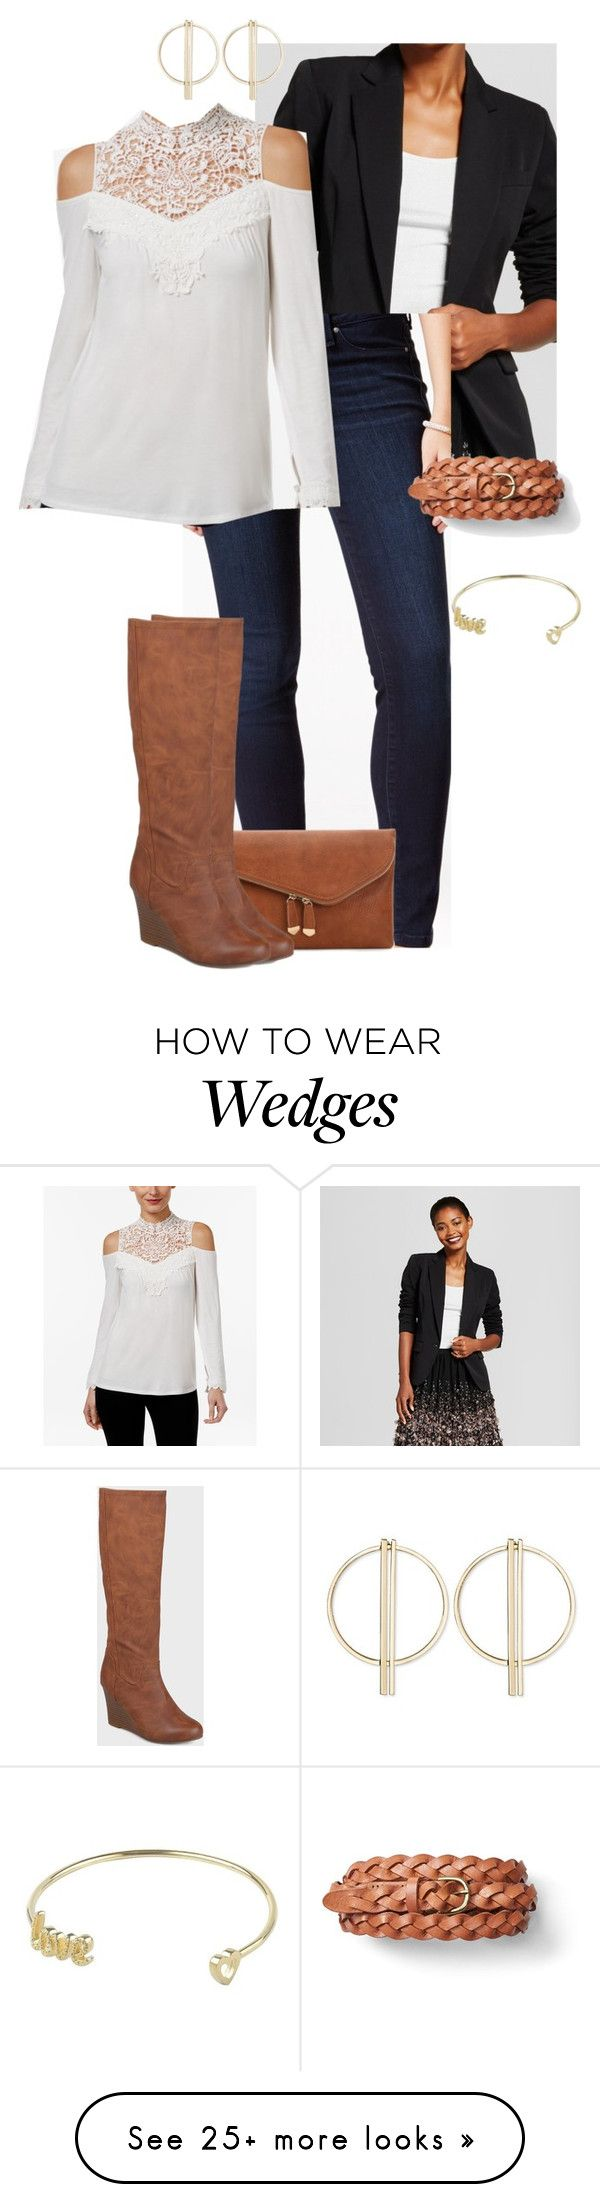 """""""Lauren B."""" by mloveless-1 on Polyvore featuring Thalia Sodi, Urban Expressions and Journee Collection"""